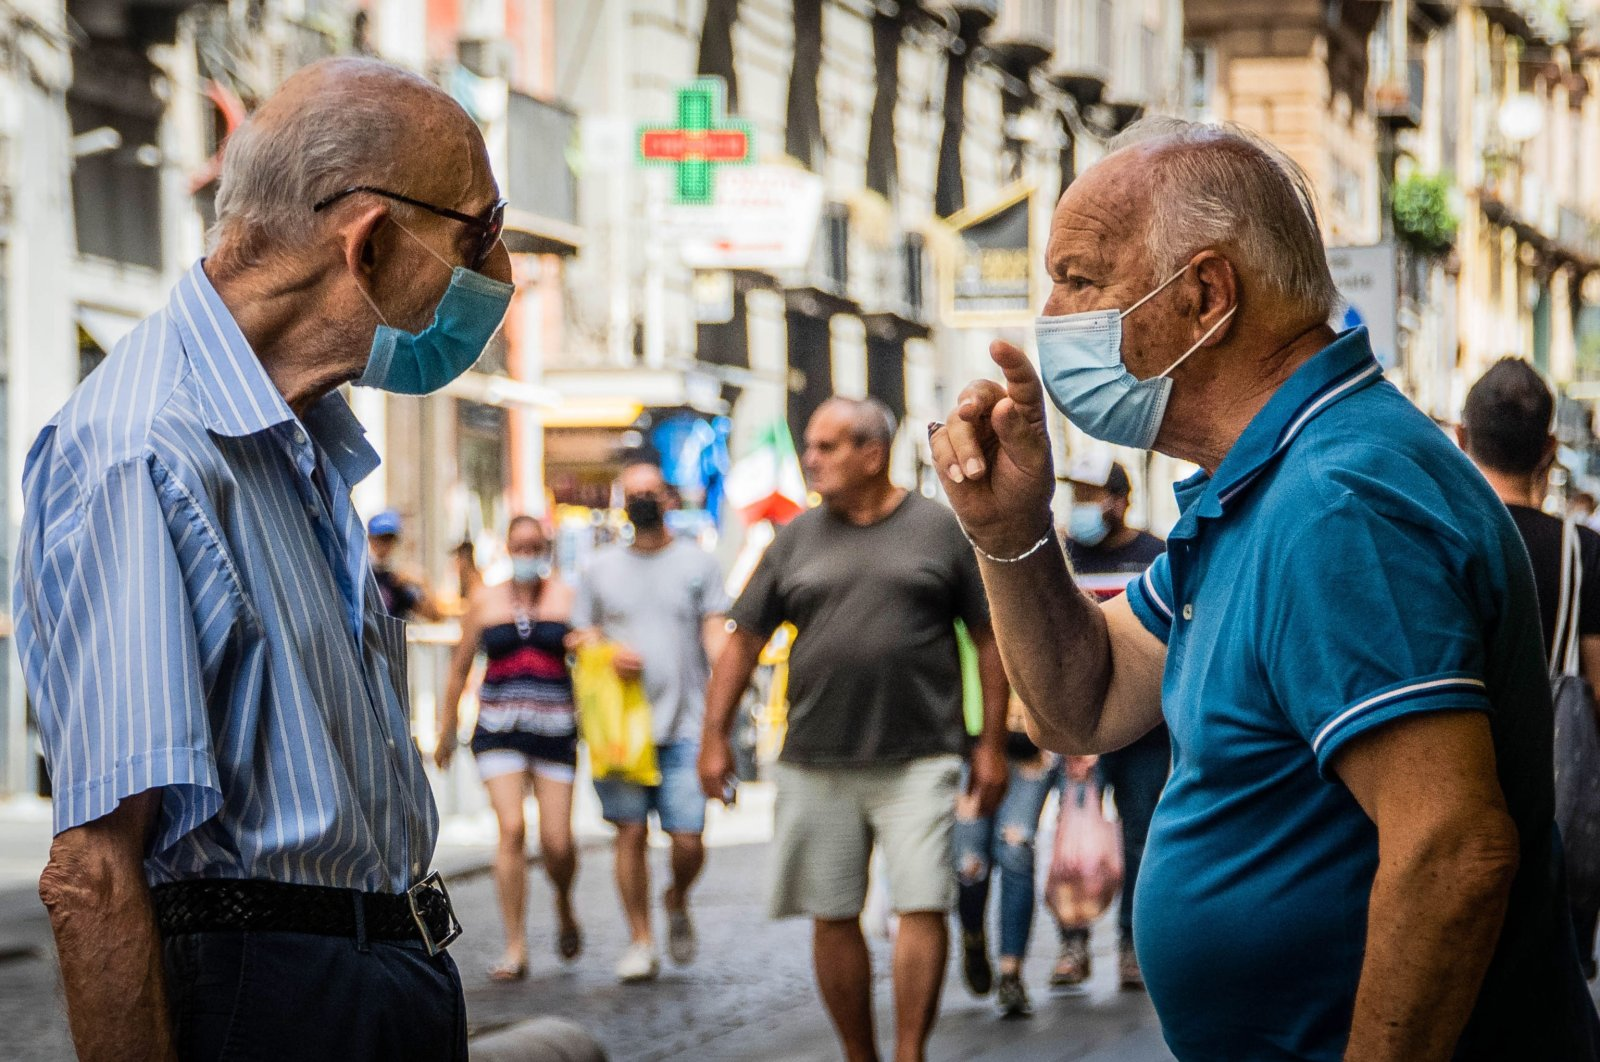 People stroll outdoors on the first day after Italy was classified as a white zone, in Naples, Italy, June 28, 2021. (EPA Photo)